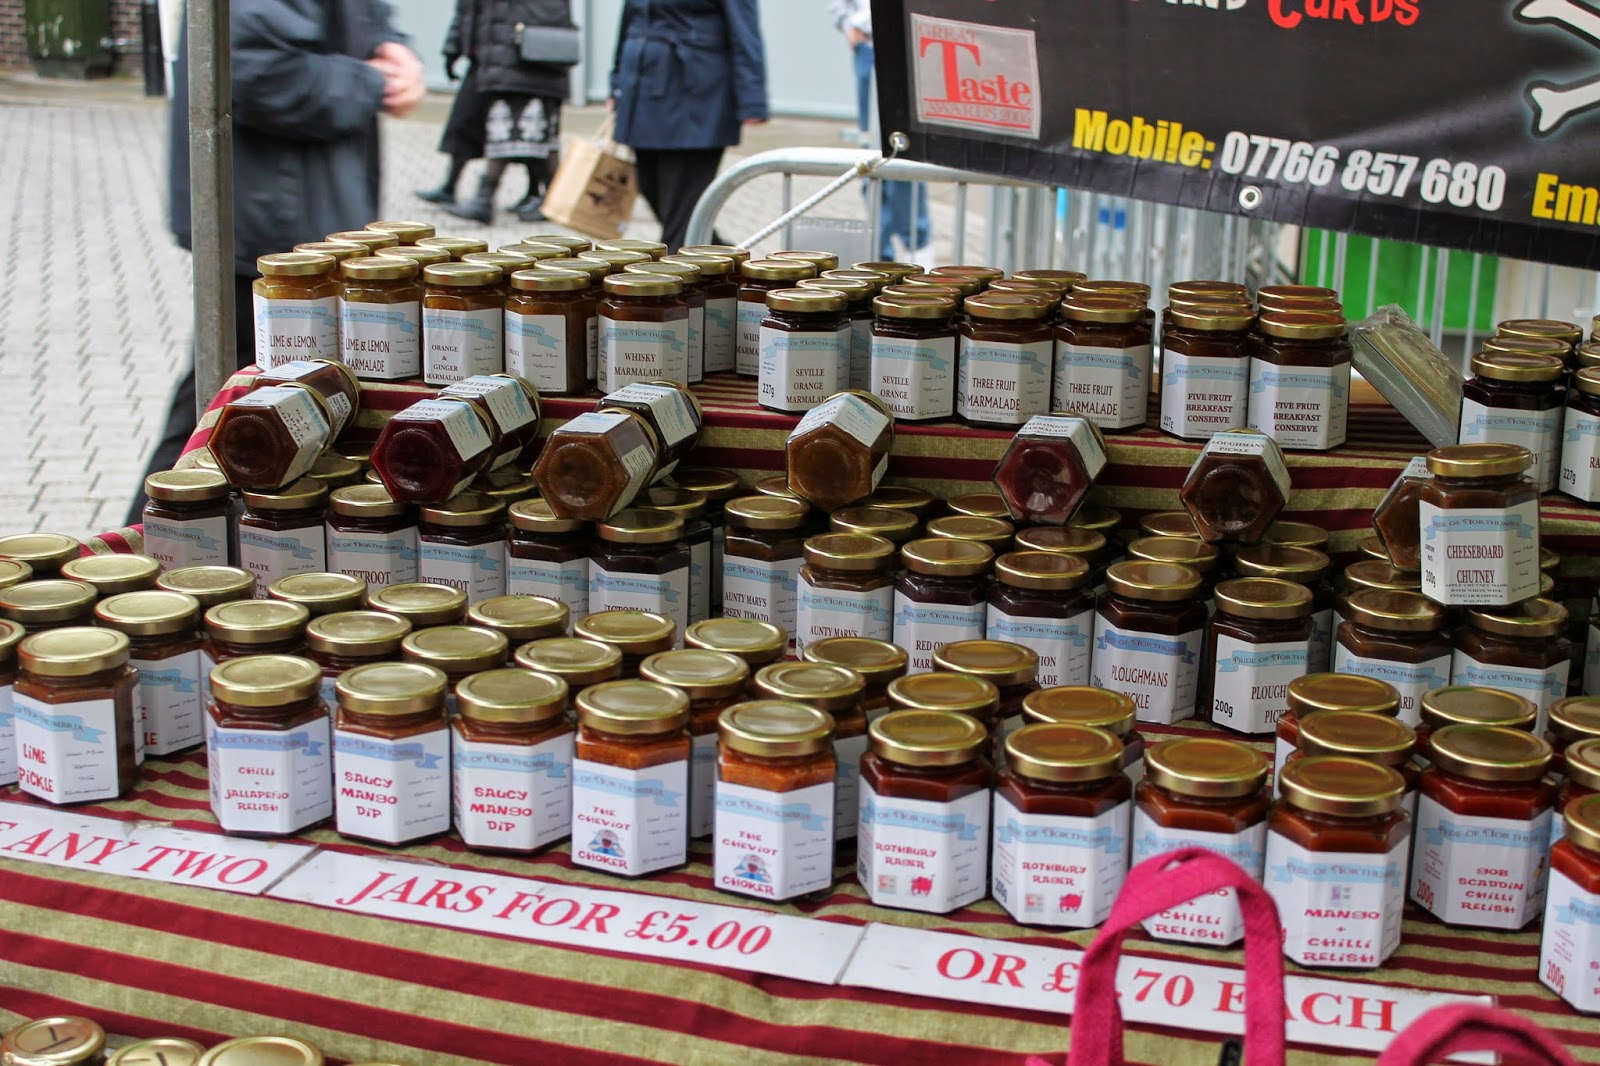 Bishop Auckland Food Festival 2014 - Local Jam, Chutney, Curds